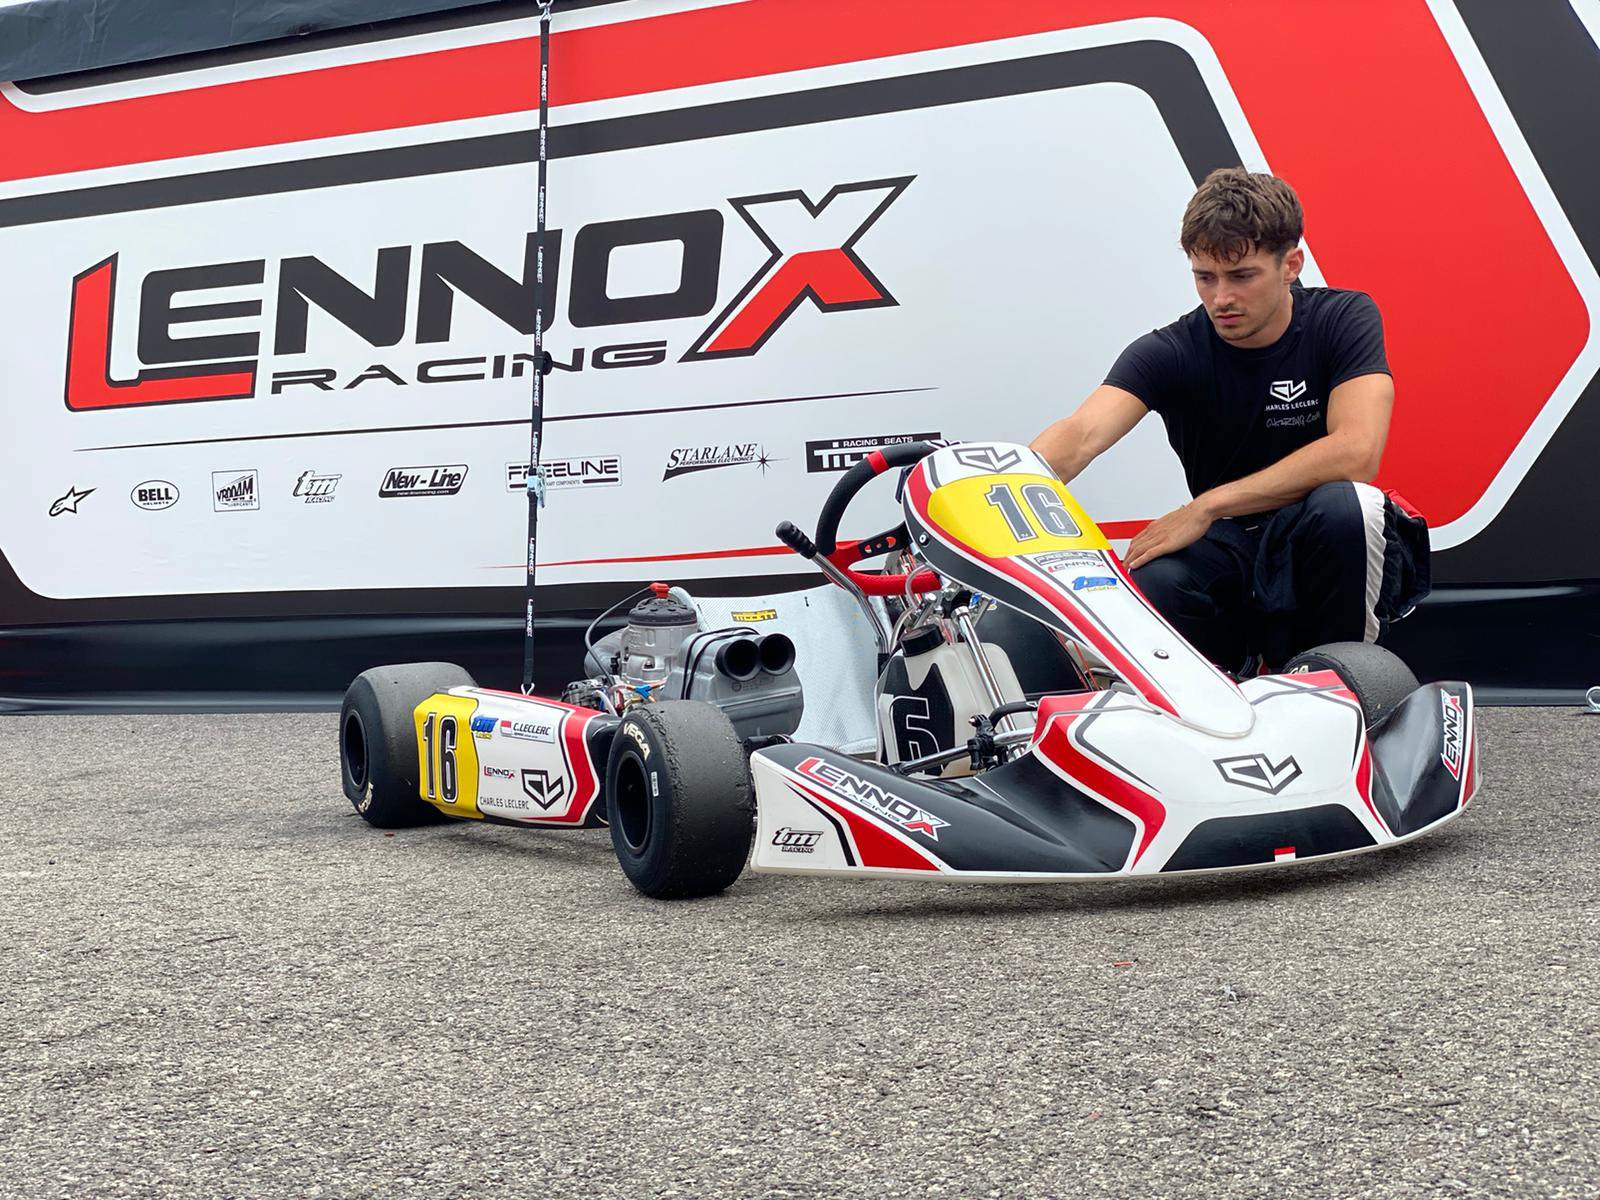 Charles Leclerc driving his CL16 KZ by Birel Art!